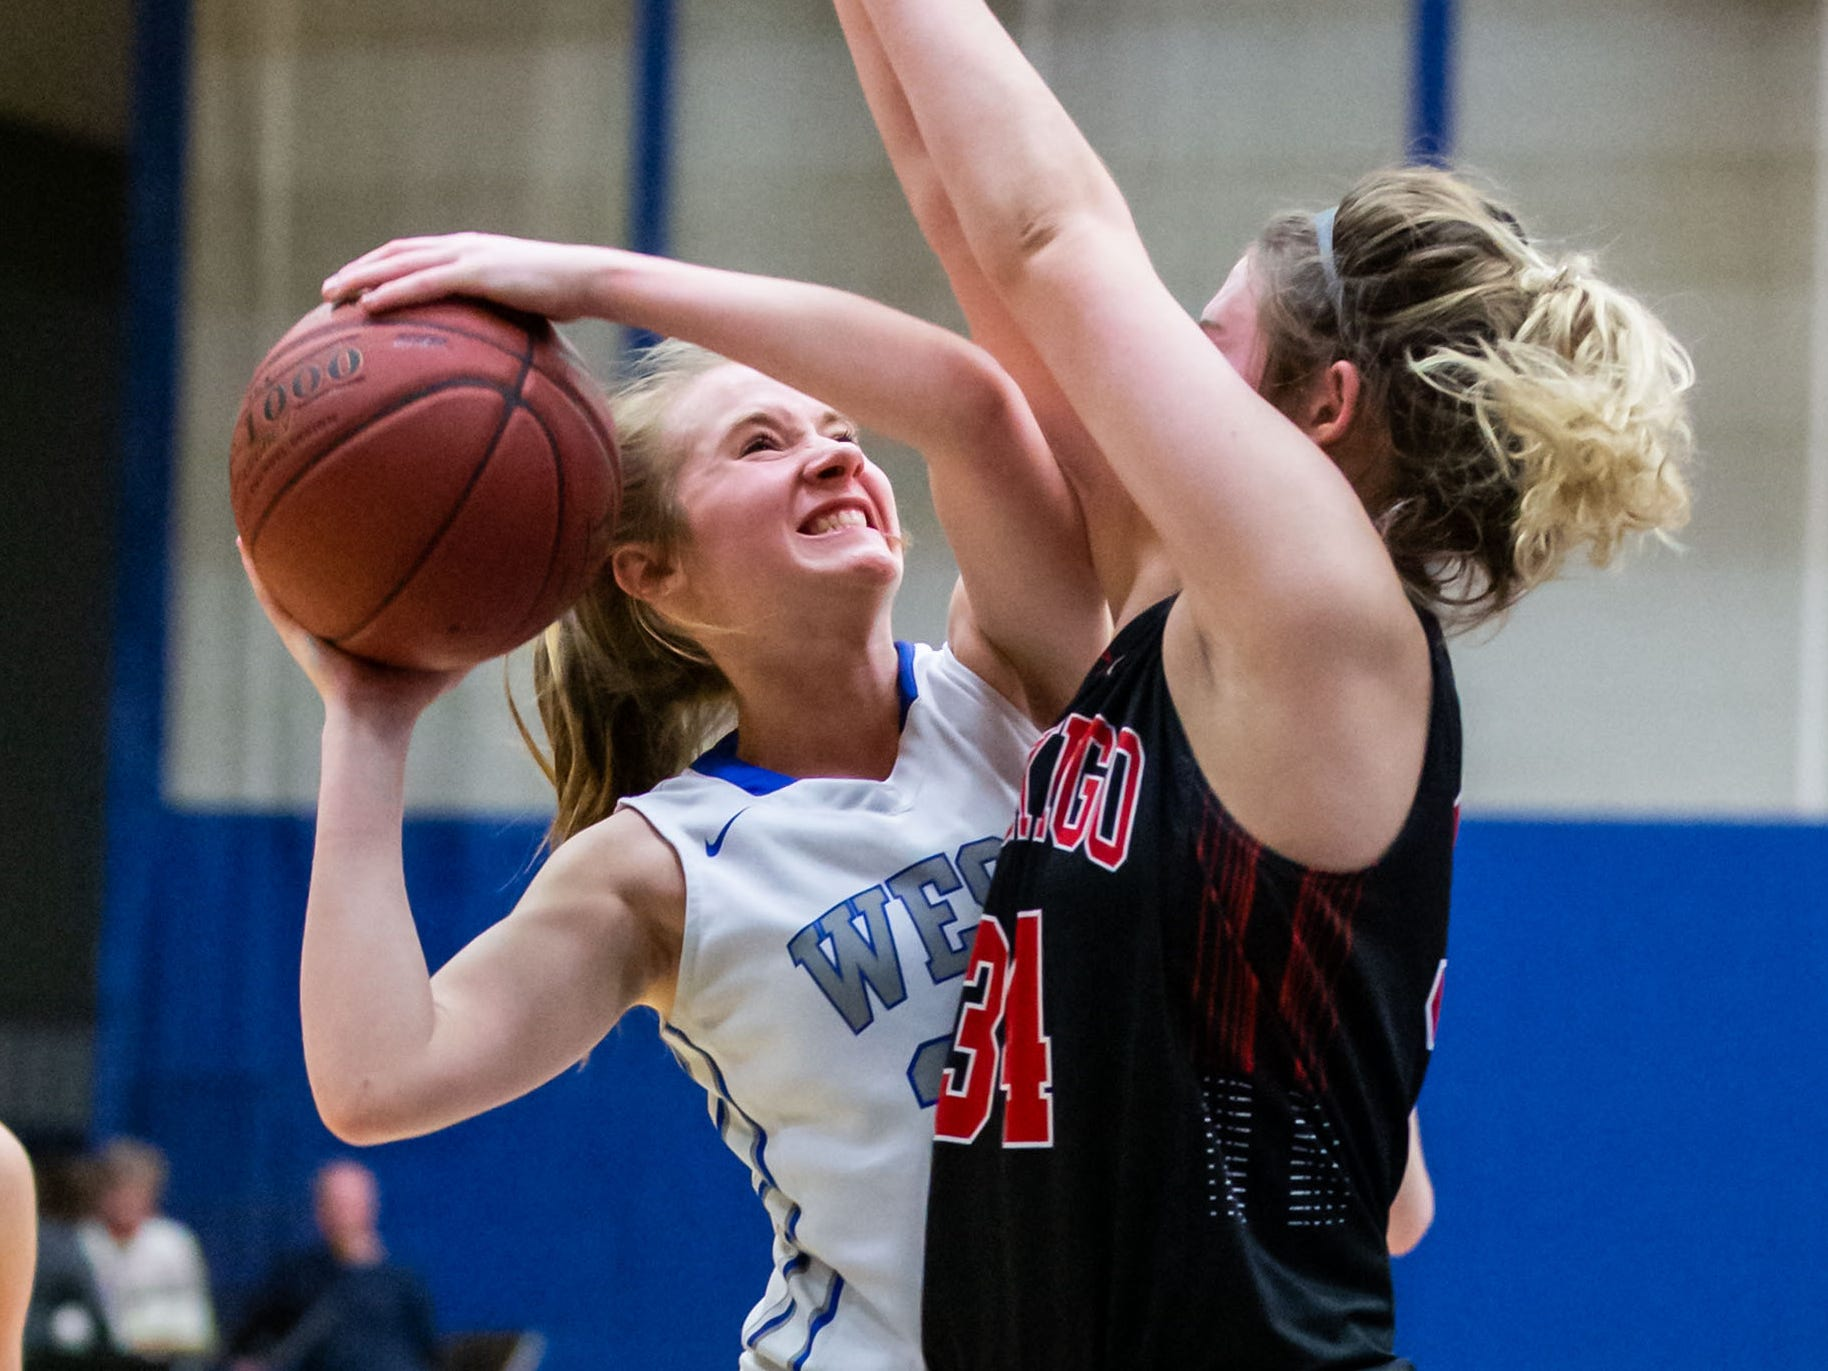 Waukesha West's Emily Rather (left) is blocked by Muskego's Kenni Czarnecki (34) during the game at Waukesha on Friday, Jan. 25, 2019.